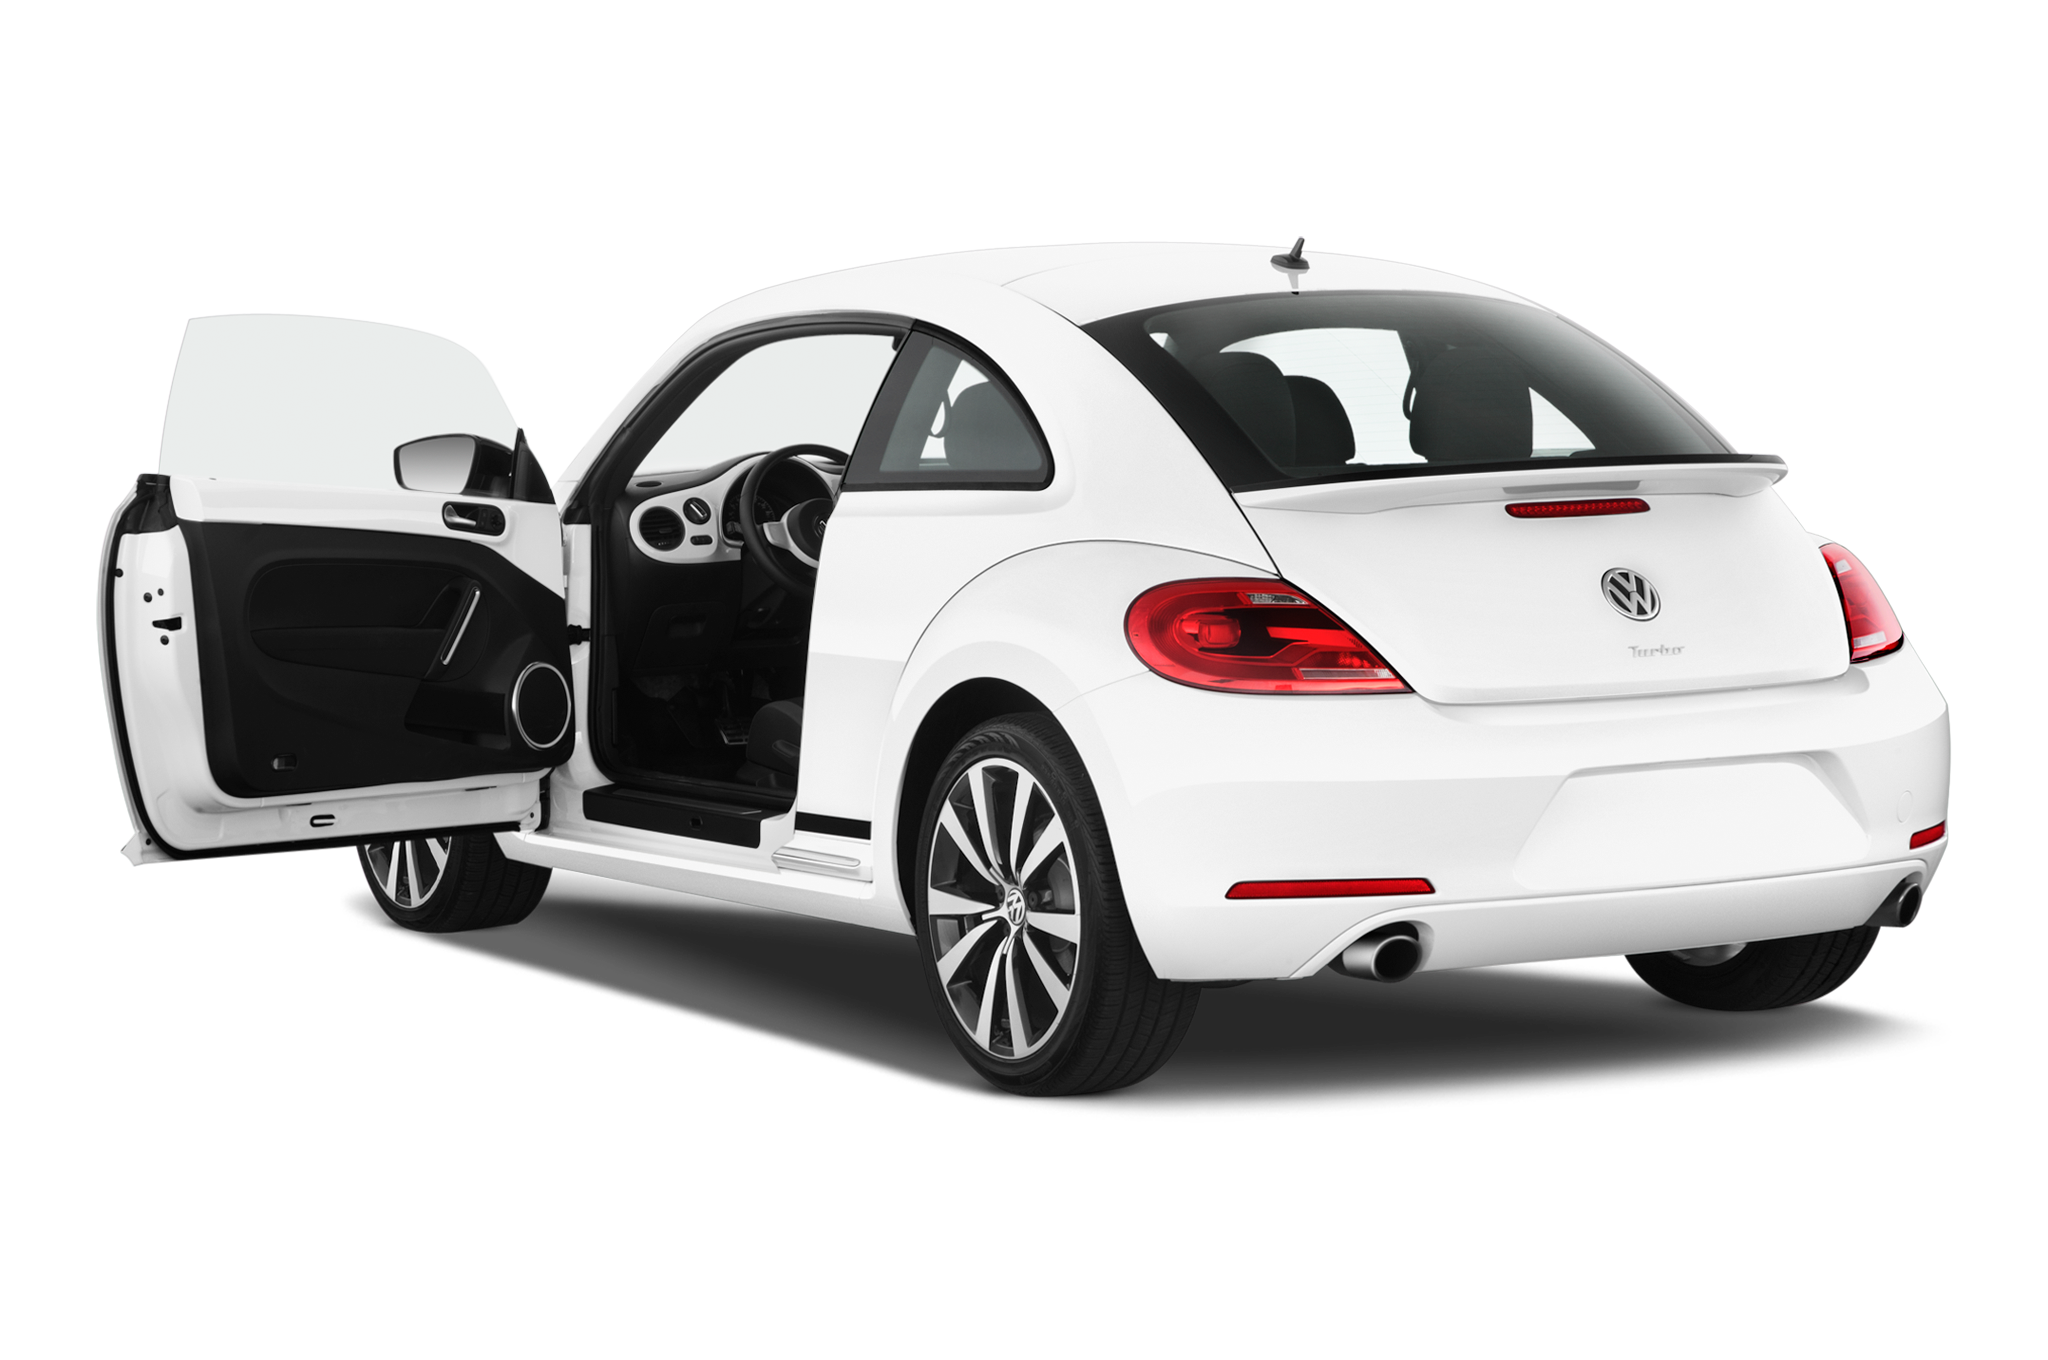 6 Things To Know About The Volkswagen Beetle Global Rallycross Cars Air Cooled Vw Parts Also New Diagram In Addition Bmw 43 96